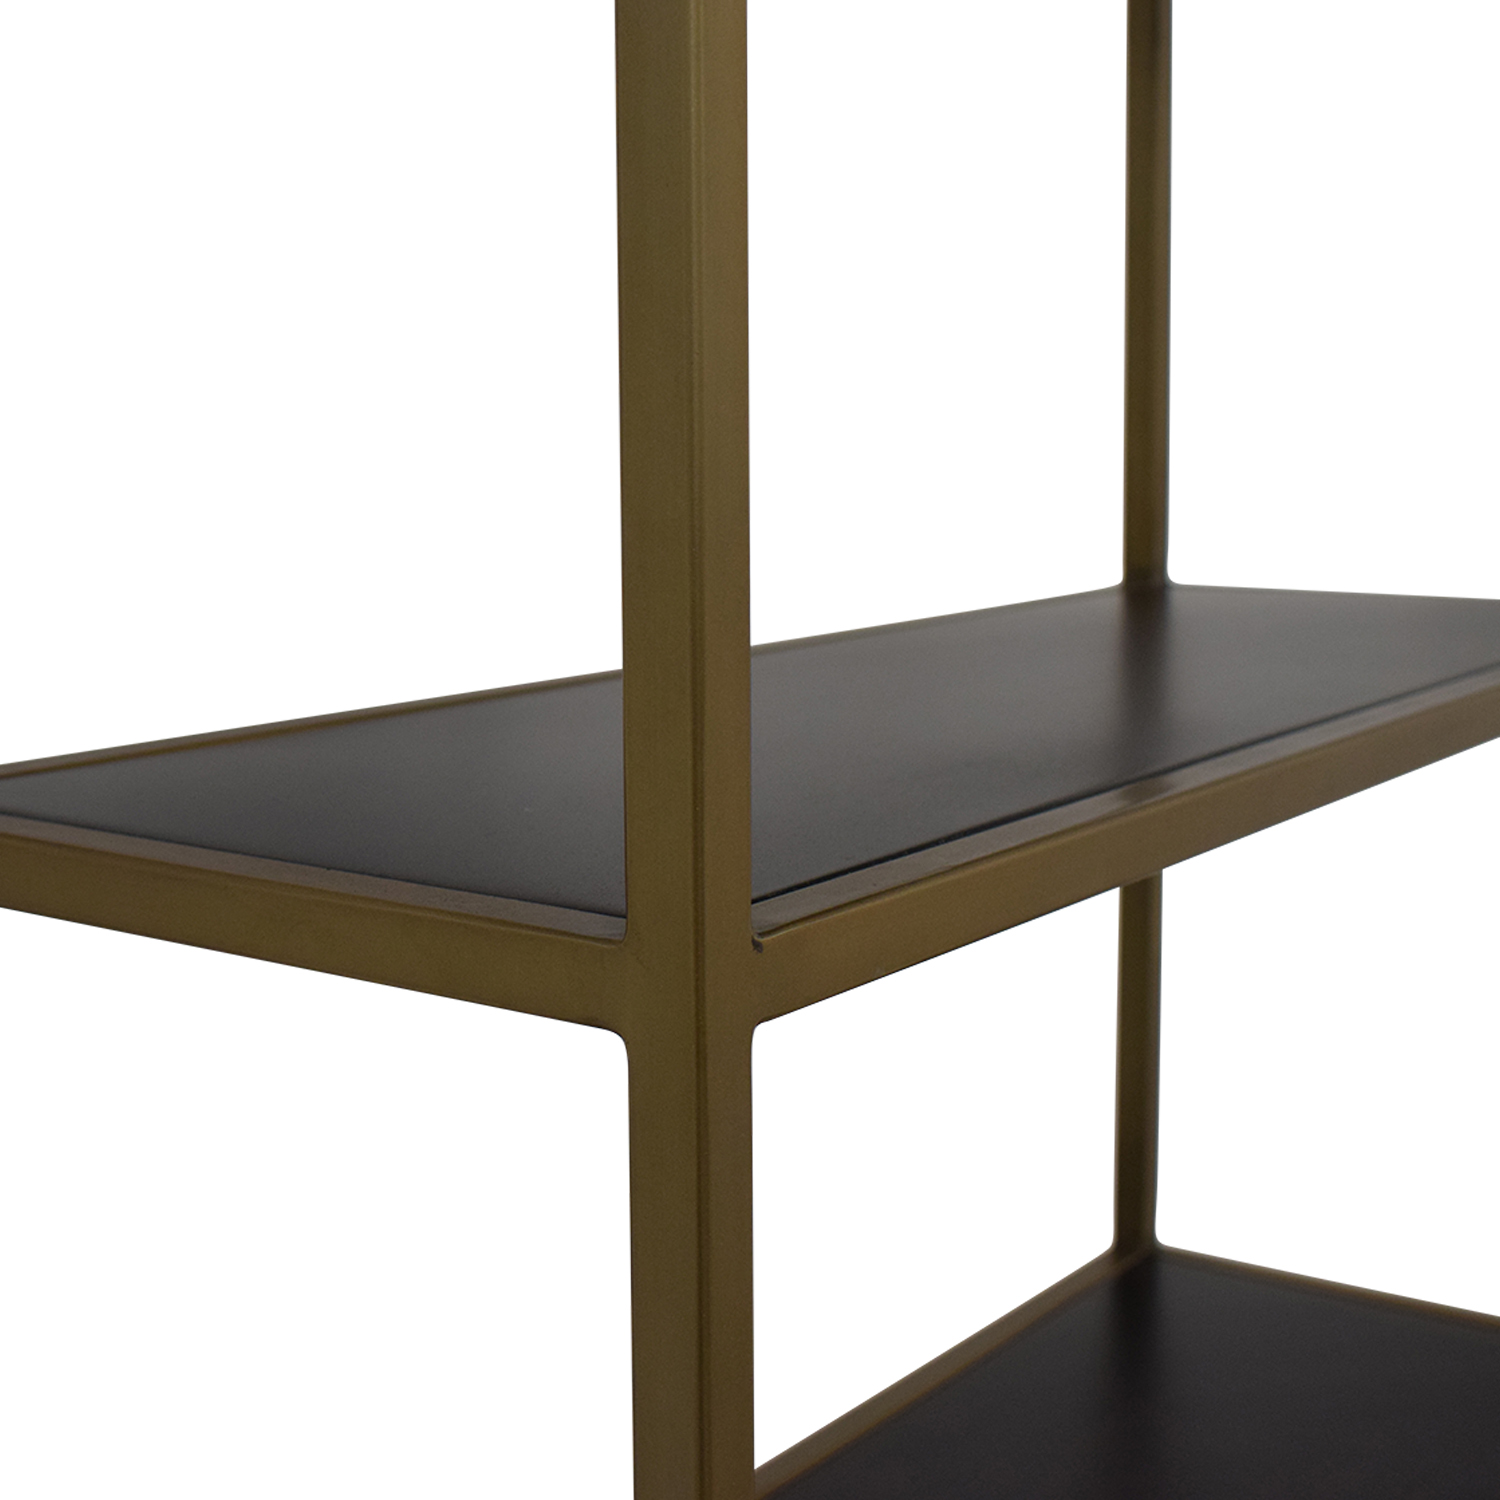 shop Crate & Barrel Brass Bookshelf Crate & Barrel Storage